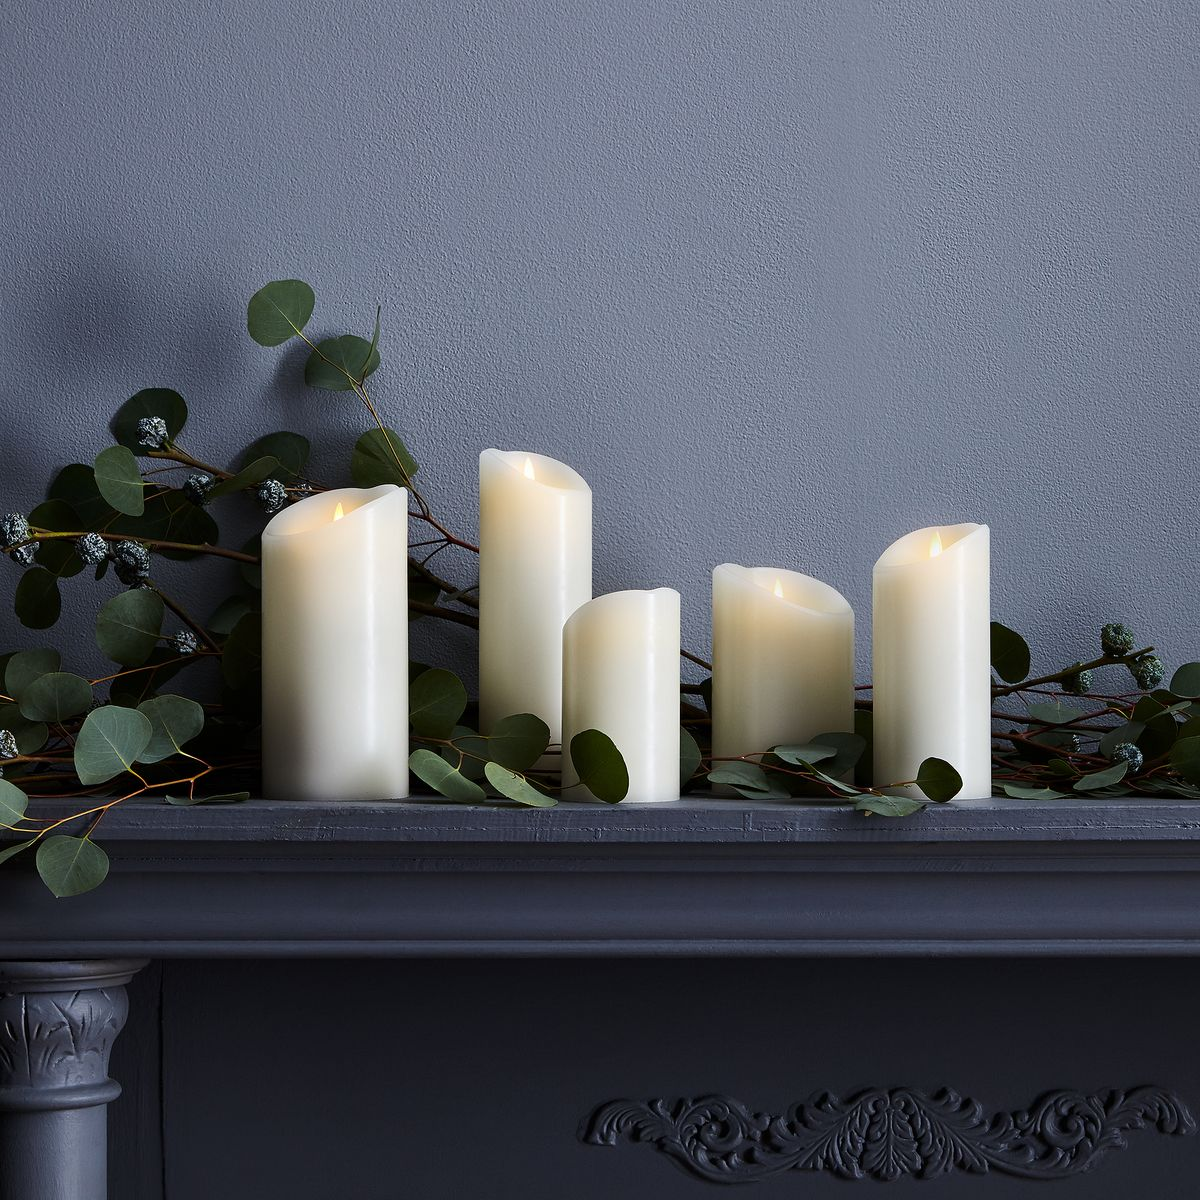 15 Ways To Decorate With Very Convincing Flameless Candles